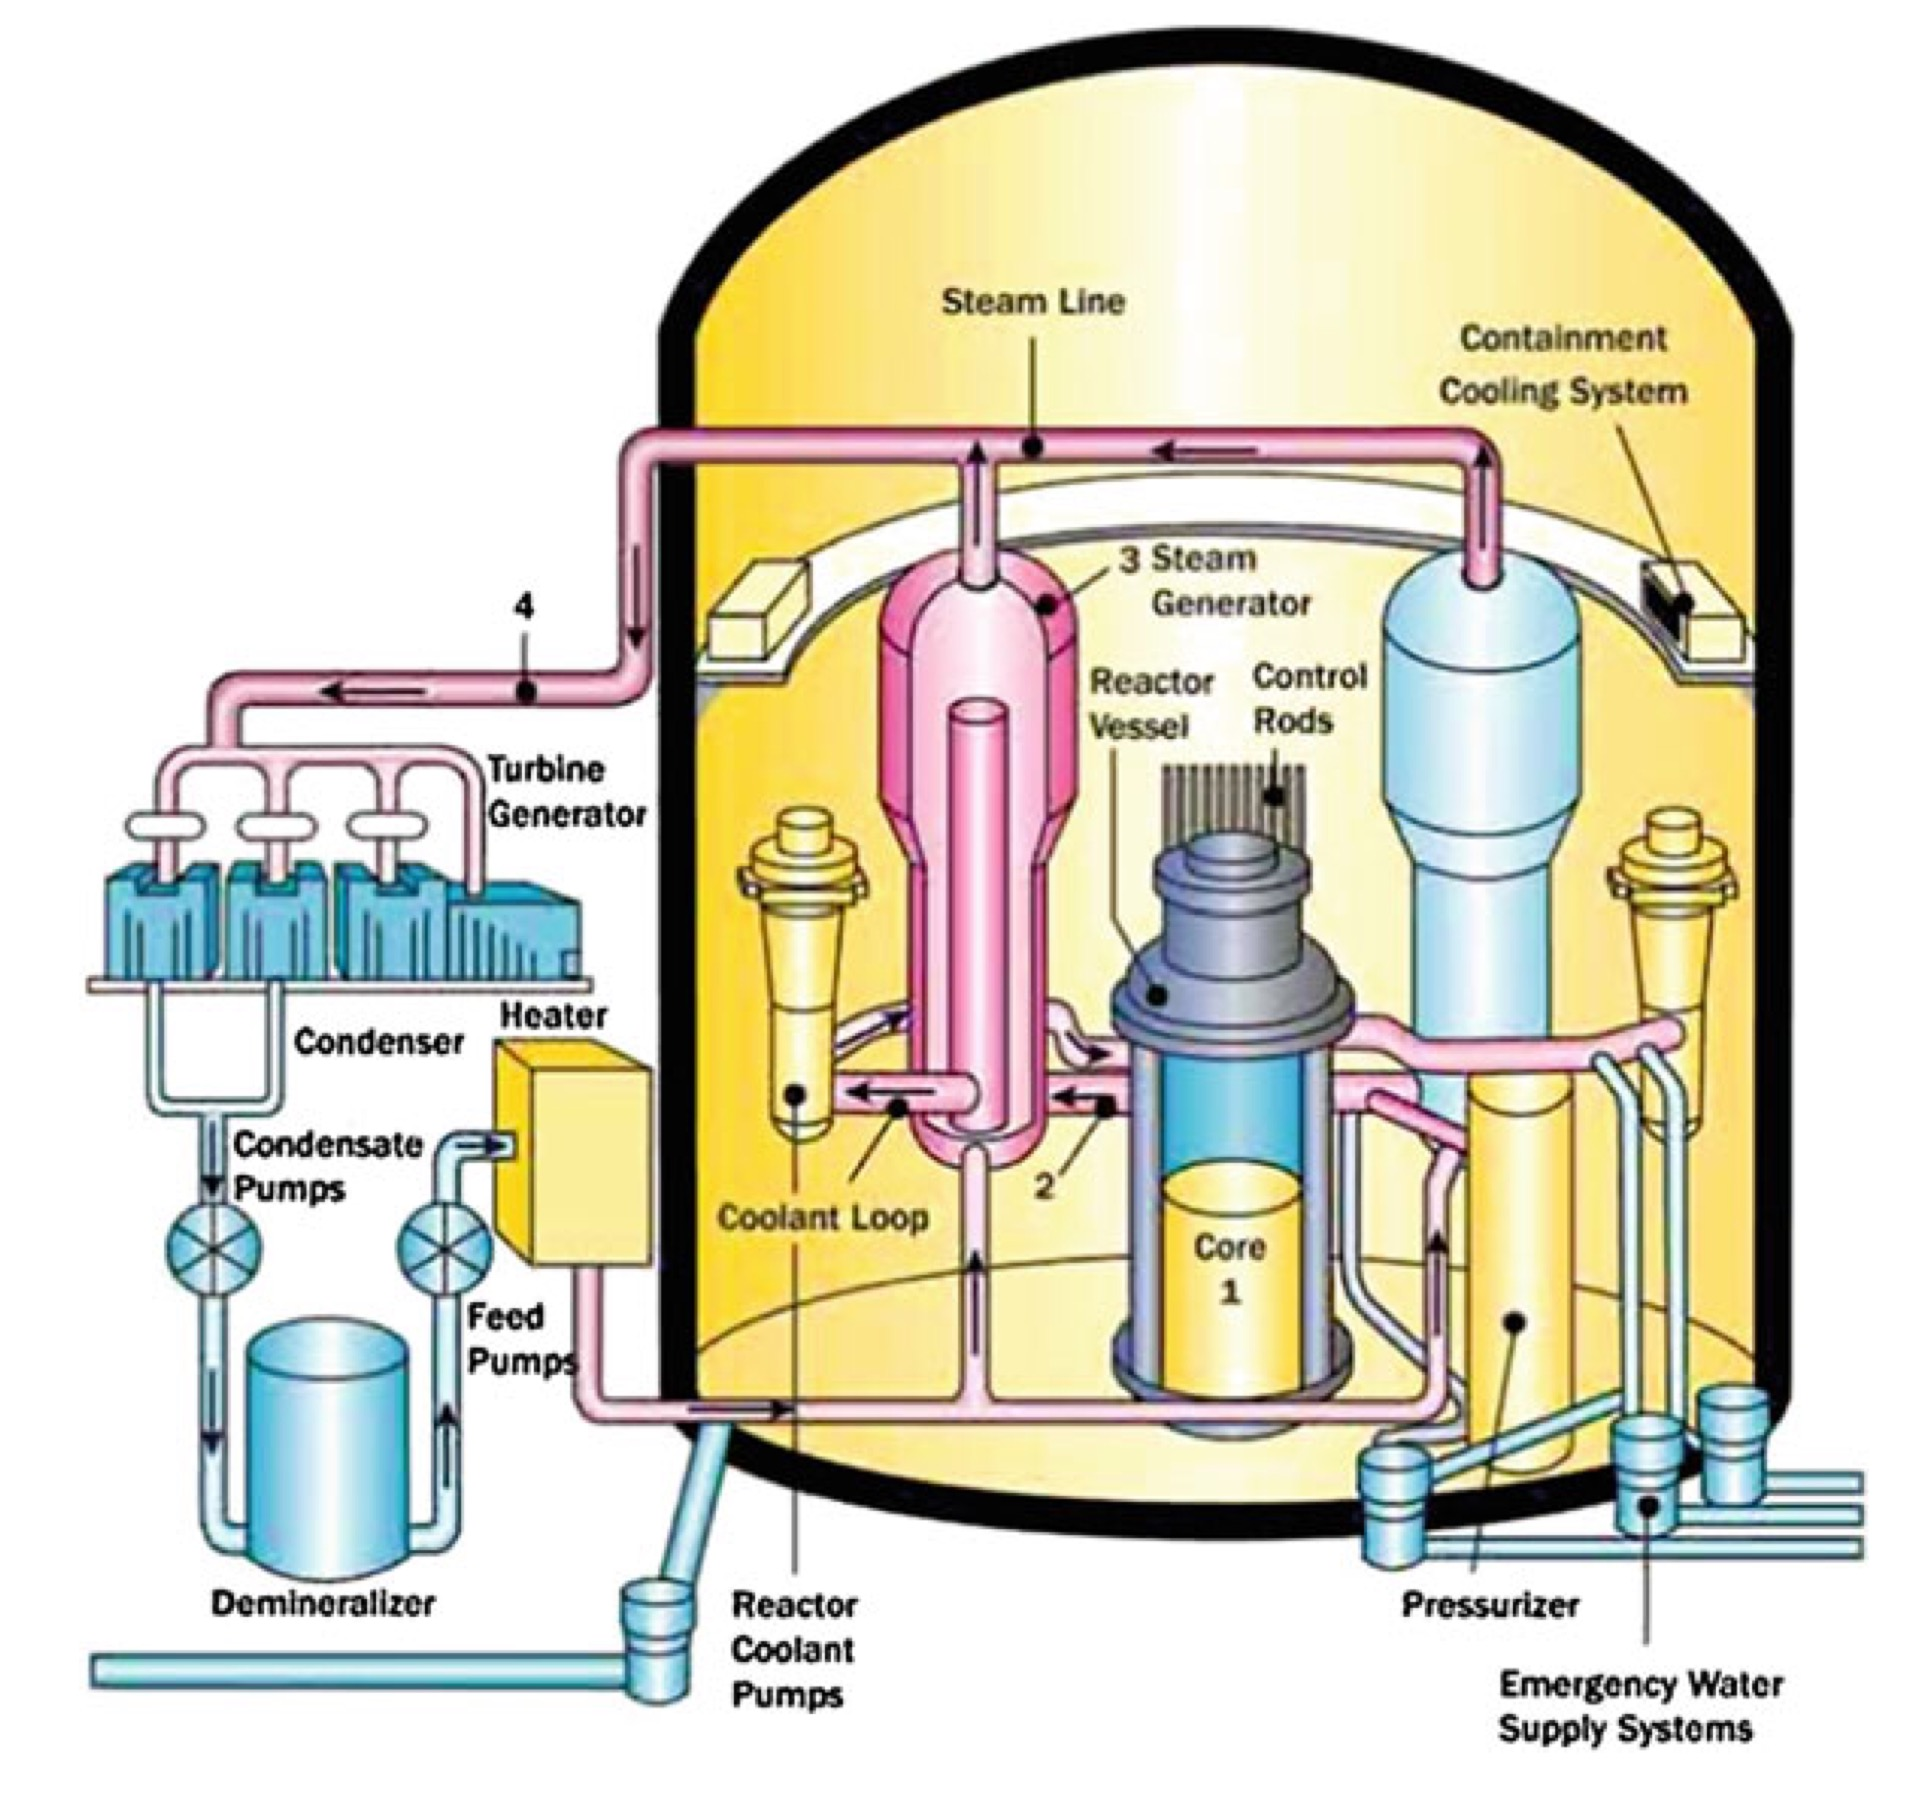 Pwr Power Plant Diagram Electrical Wiring Diagrams Nuclear Pictures Station Layout Schematic Mining Awareness Nu Le Ar